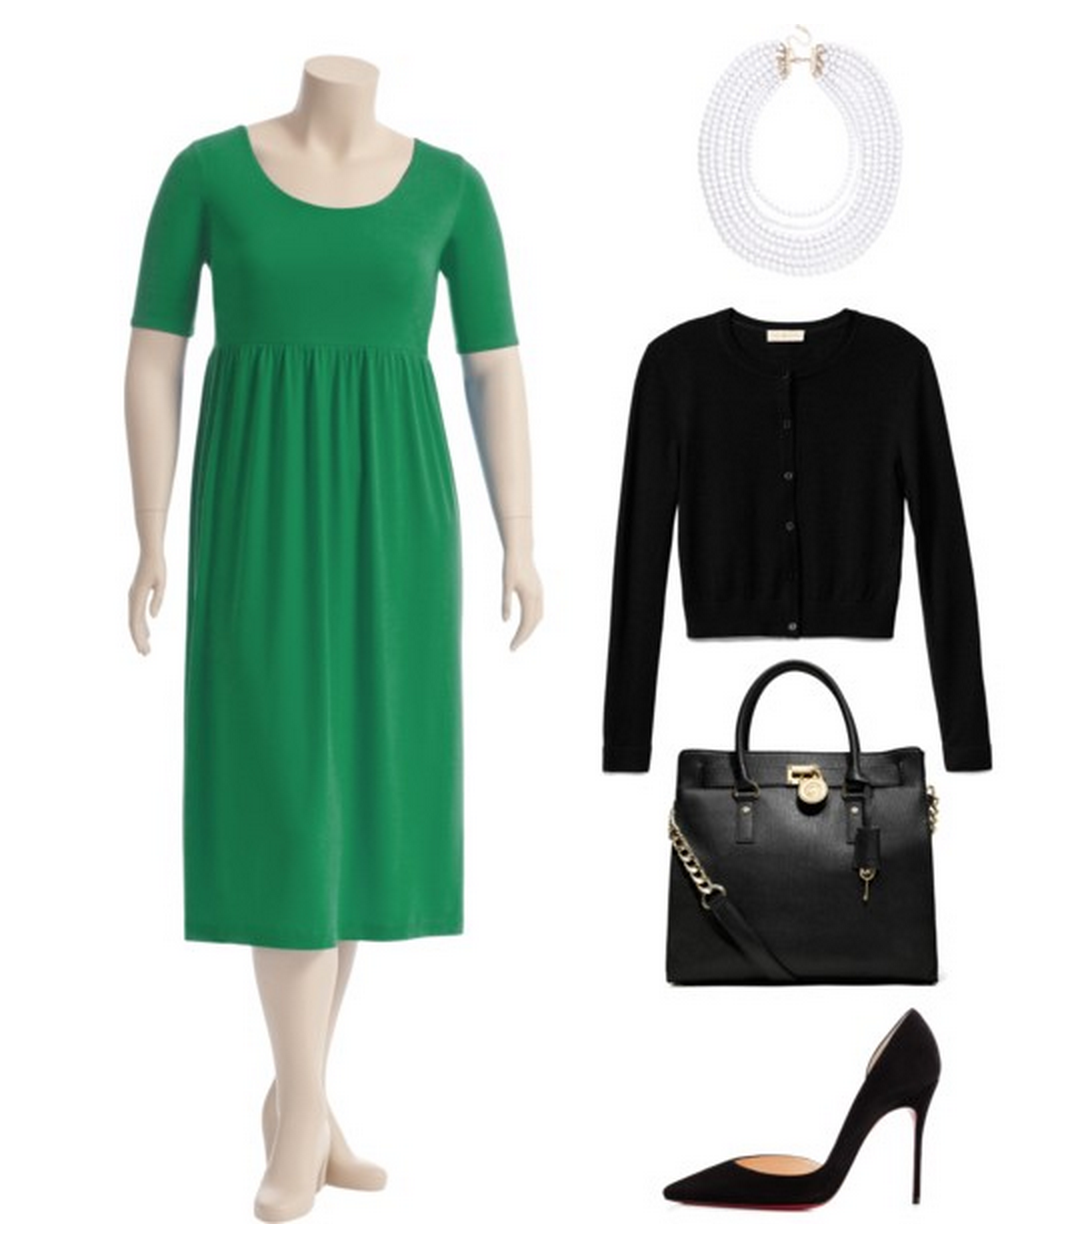 Work emerald into your workwear with our empire waist 'Cassandra' dress in gorgeous green with black and white accessories! #plussize ^CD